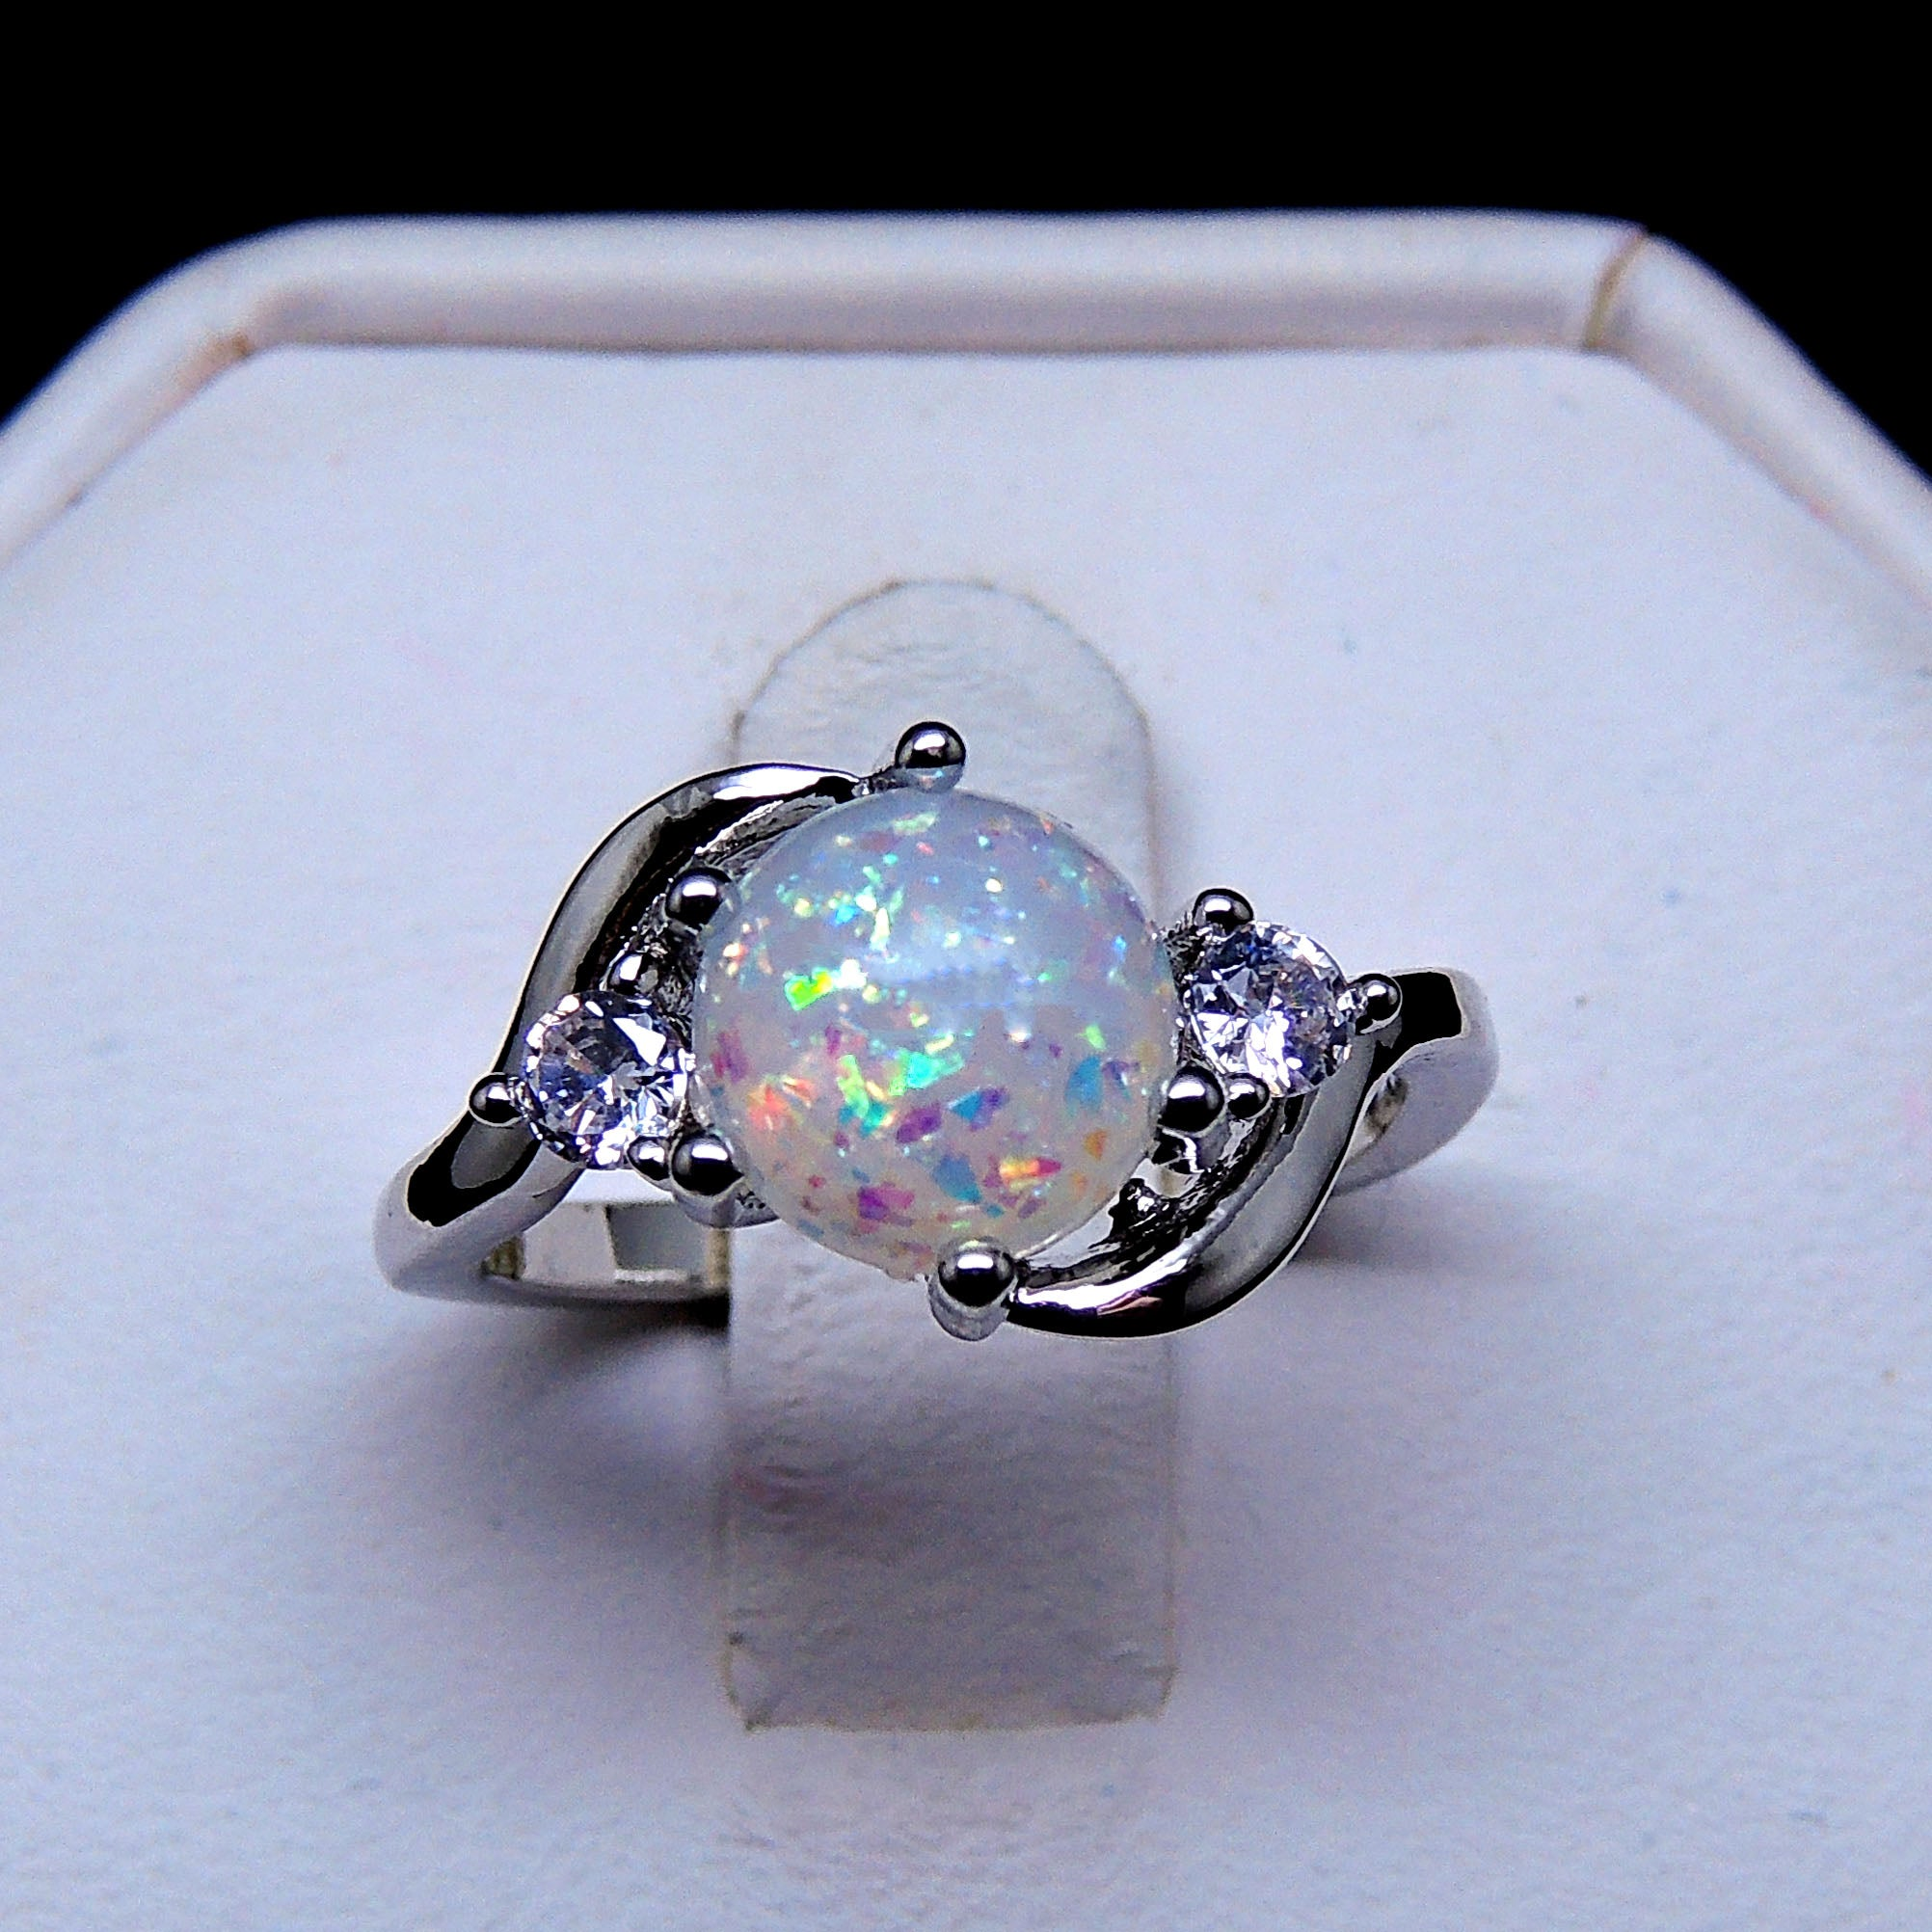 Oneonta Simulated Fire Opal with Clear Accents Ring - Ginger Lyne Collection